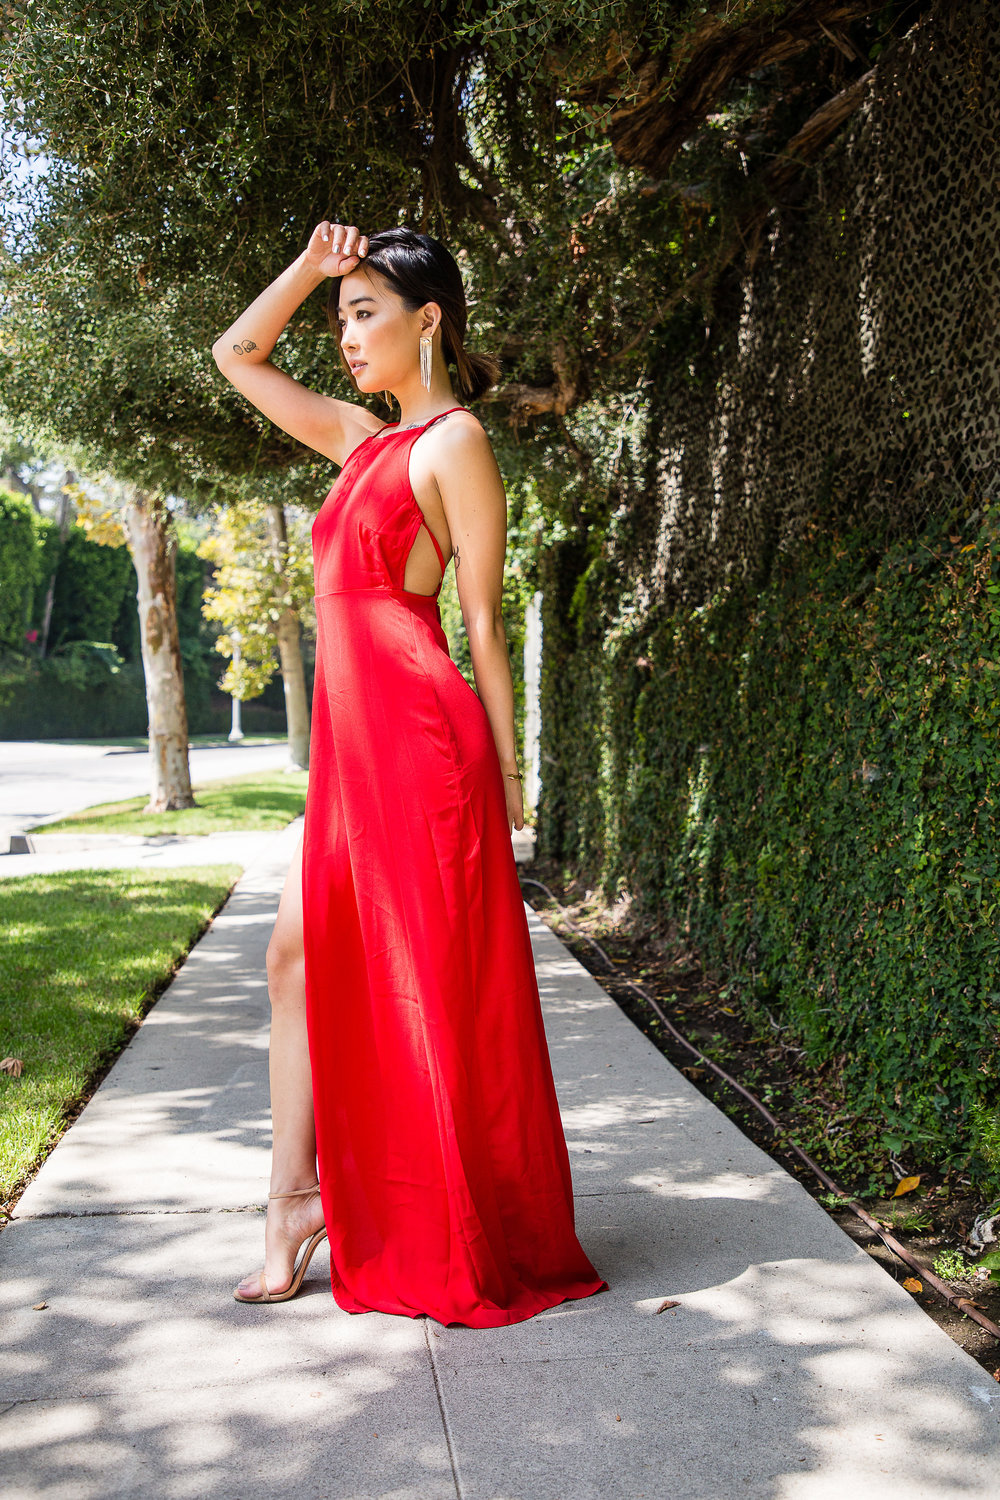 [ the elements |  dress:  PrettyLittleThing   Red Strappy Back Detail Chiffon Maxi Dress , earrings:  Janna Conner Crystal Marquis Fringe Earrings , bracelet:  Vita Fede , shoes:  Stuart Weitzman Nudist Heels ]